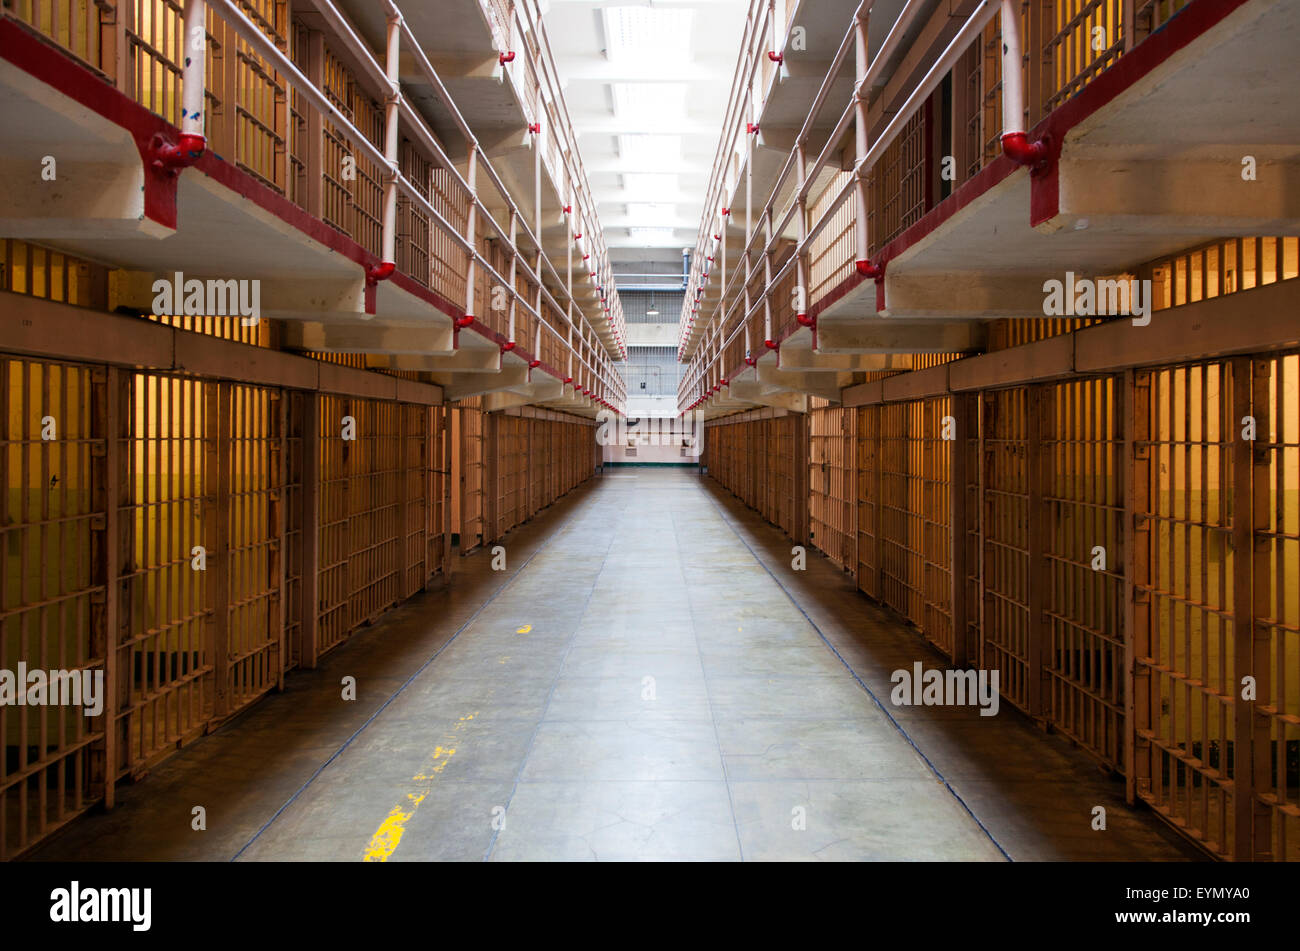 Prison Cells in Alcatraz, San Francisco, USA - Stock Image